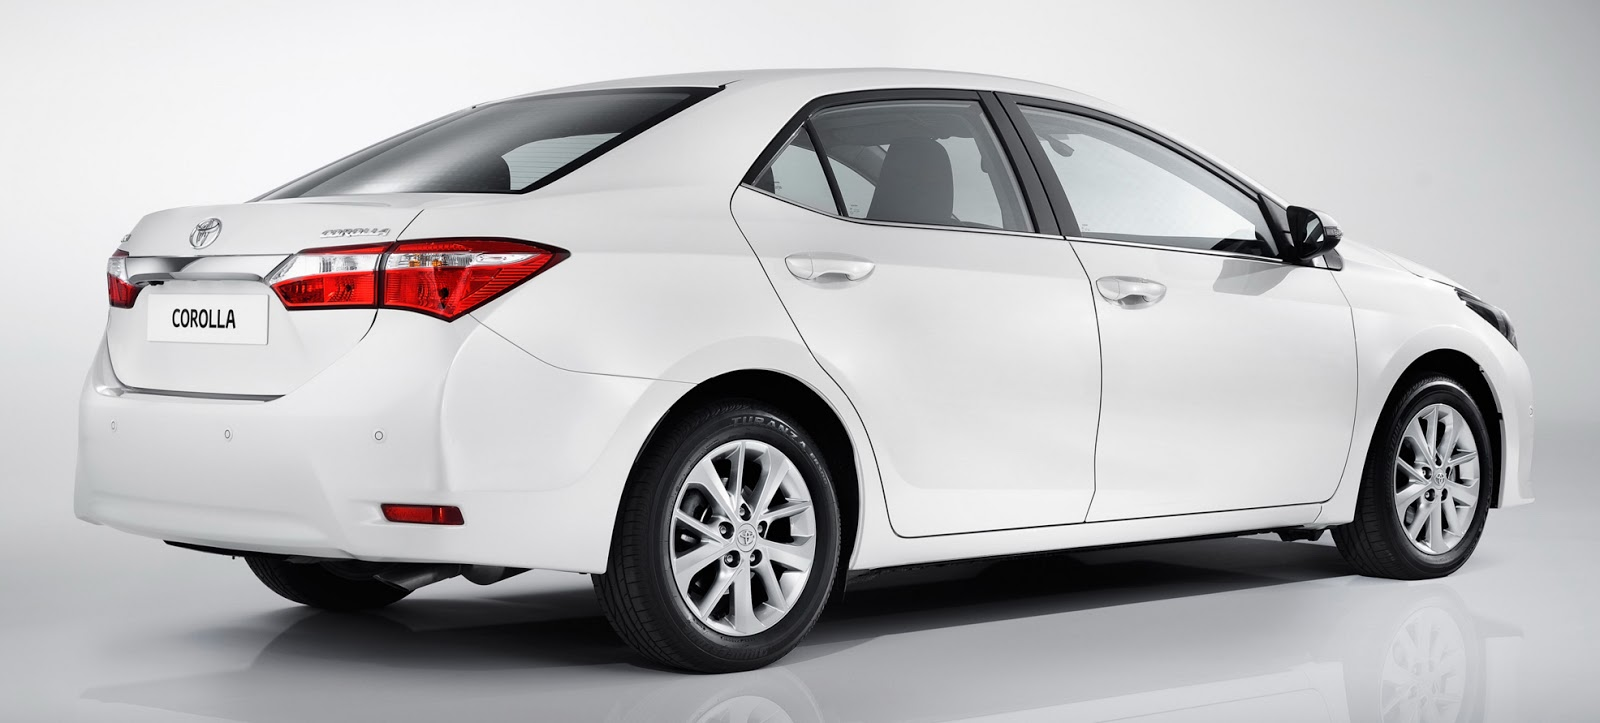 The new look might not a big attraction when the public will judge and will refer it look like new vois as the current all new honda civic referred to honda